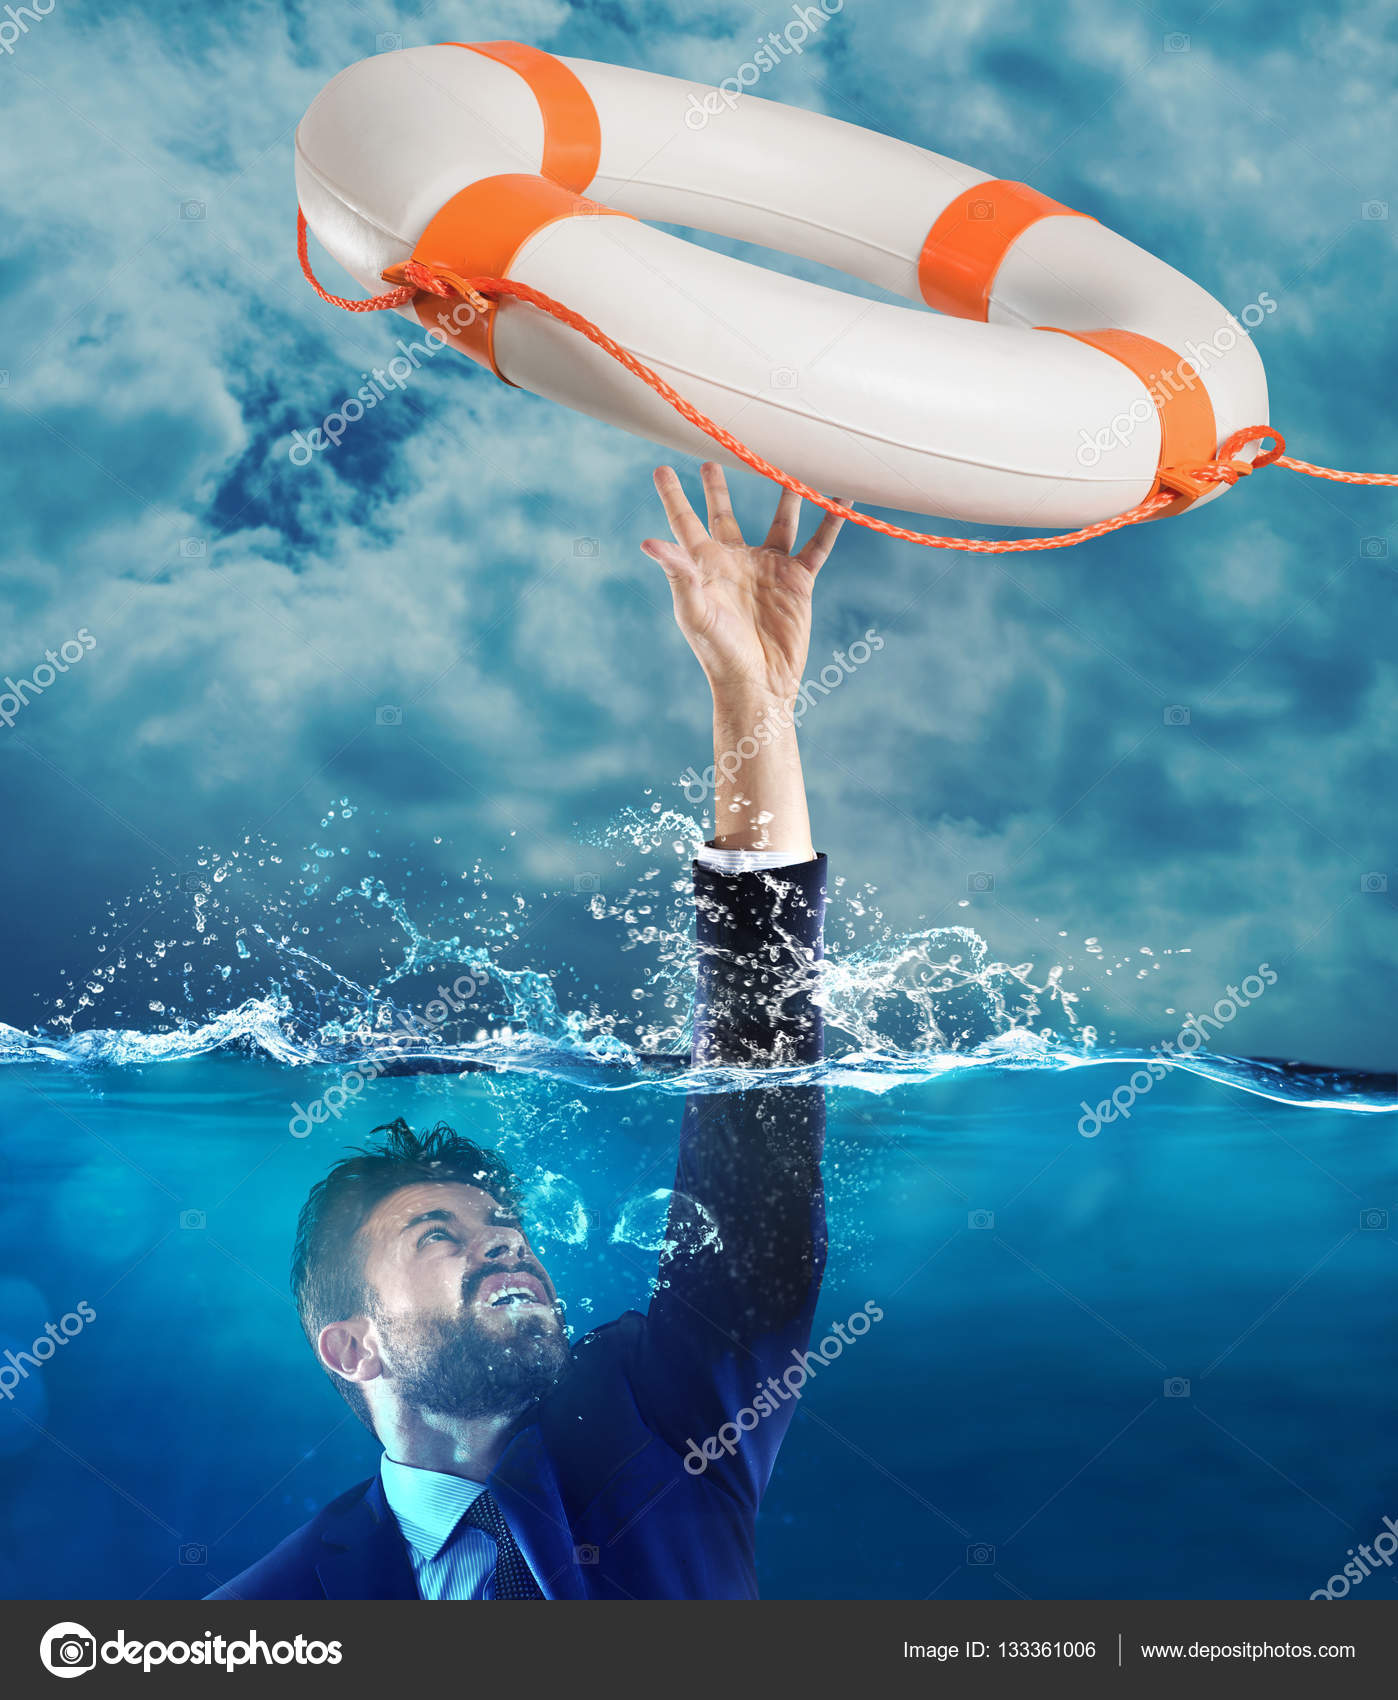 Lifesaver Launched A Drowning Man Stock Photo